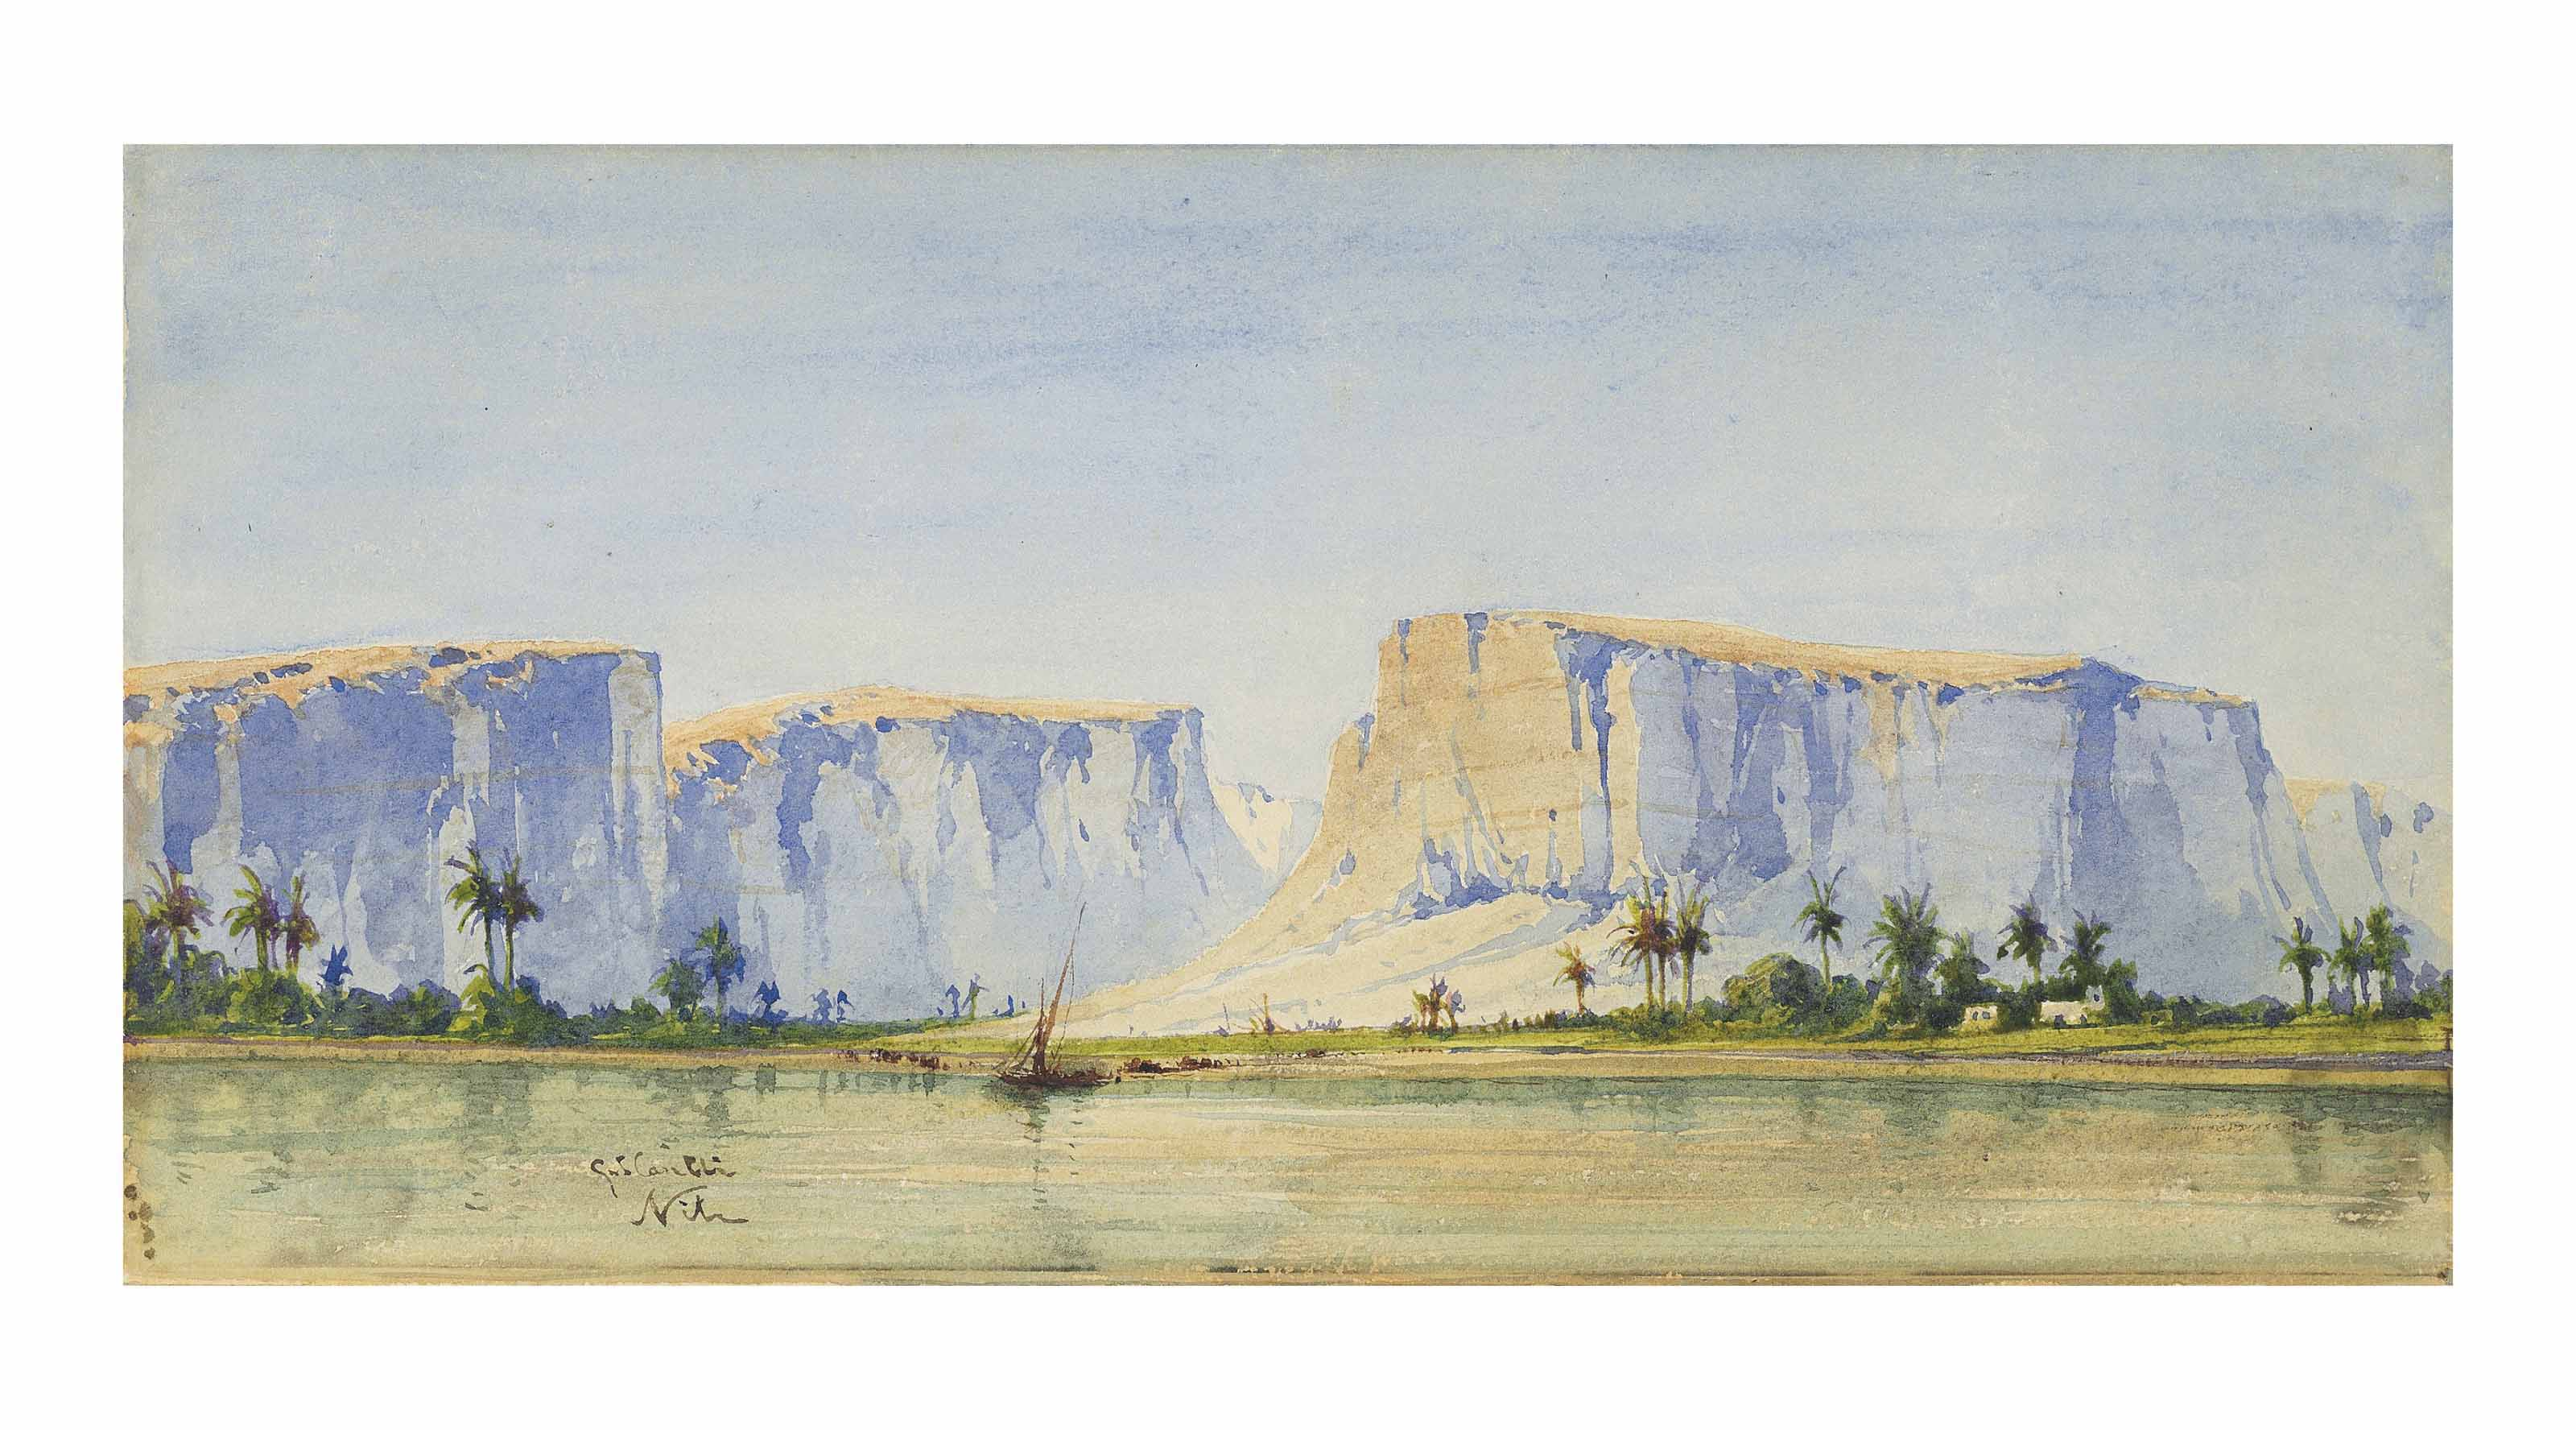 A view of the river Nile near Qena, Egypt